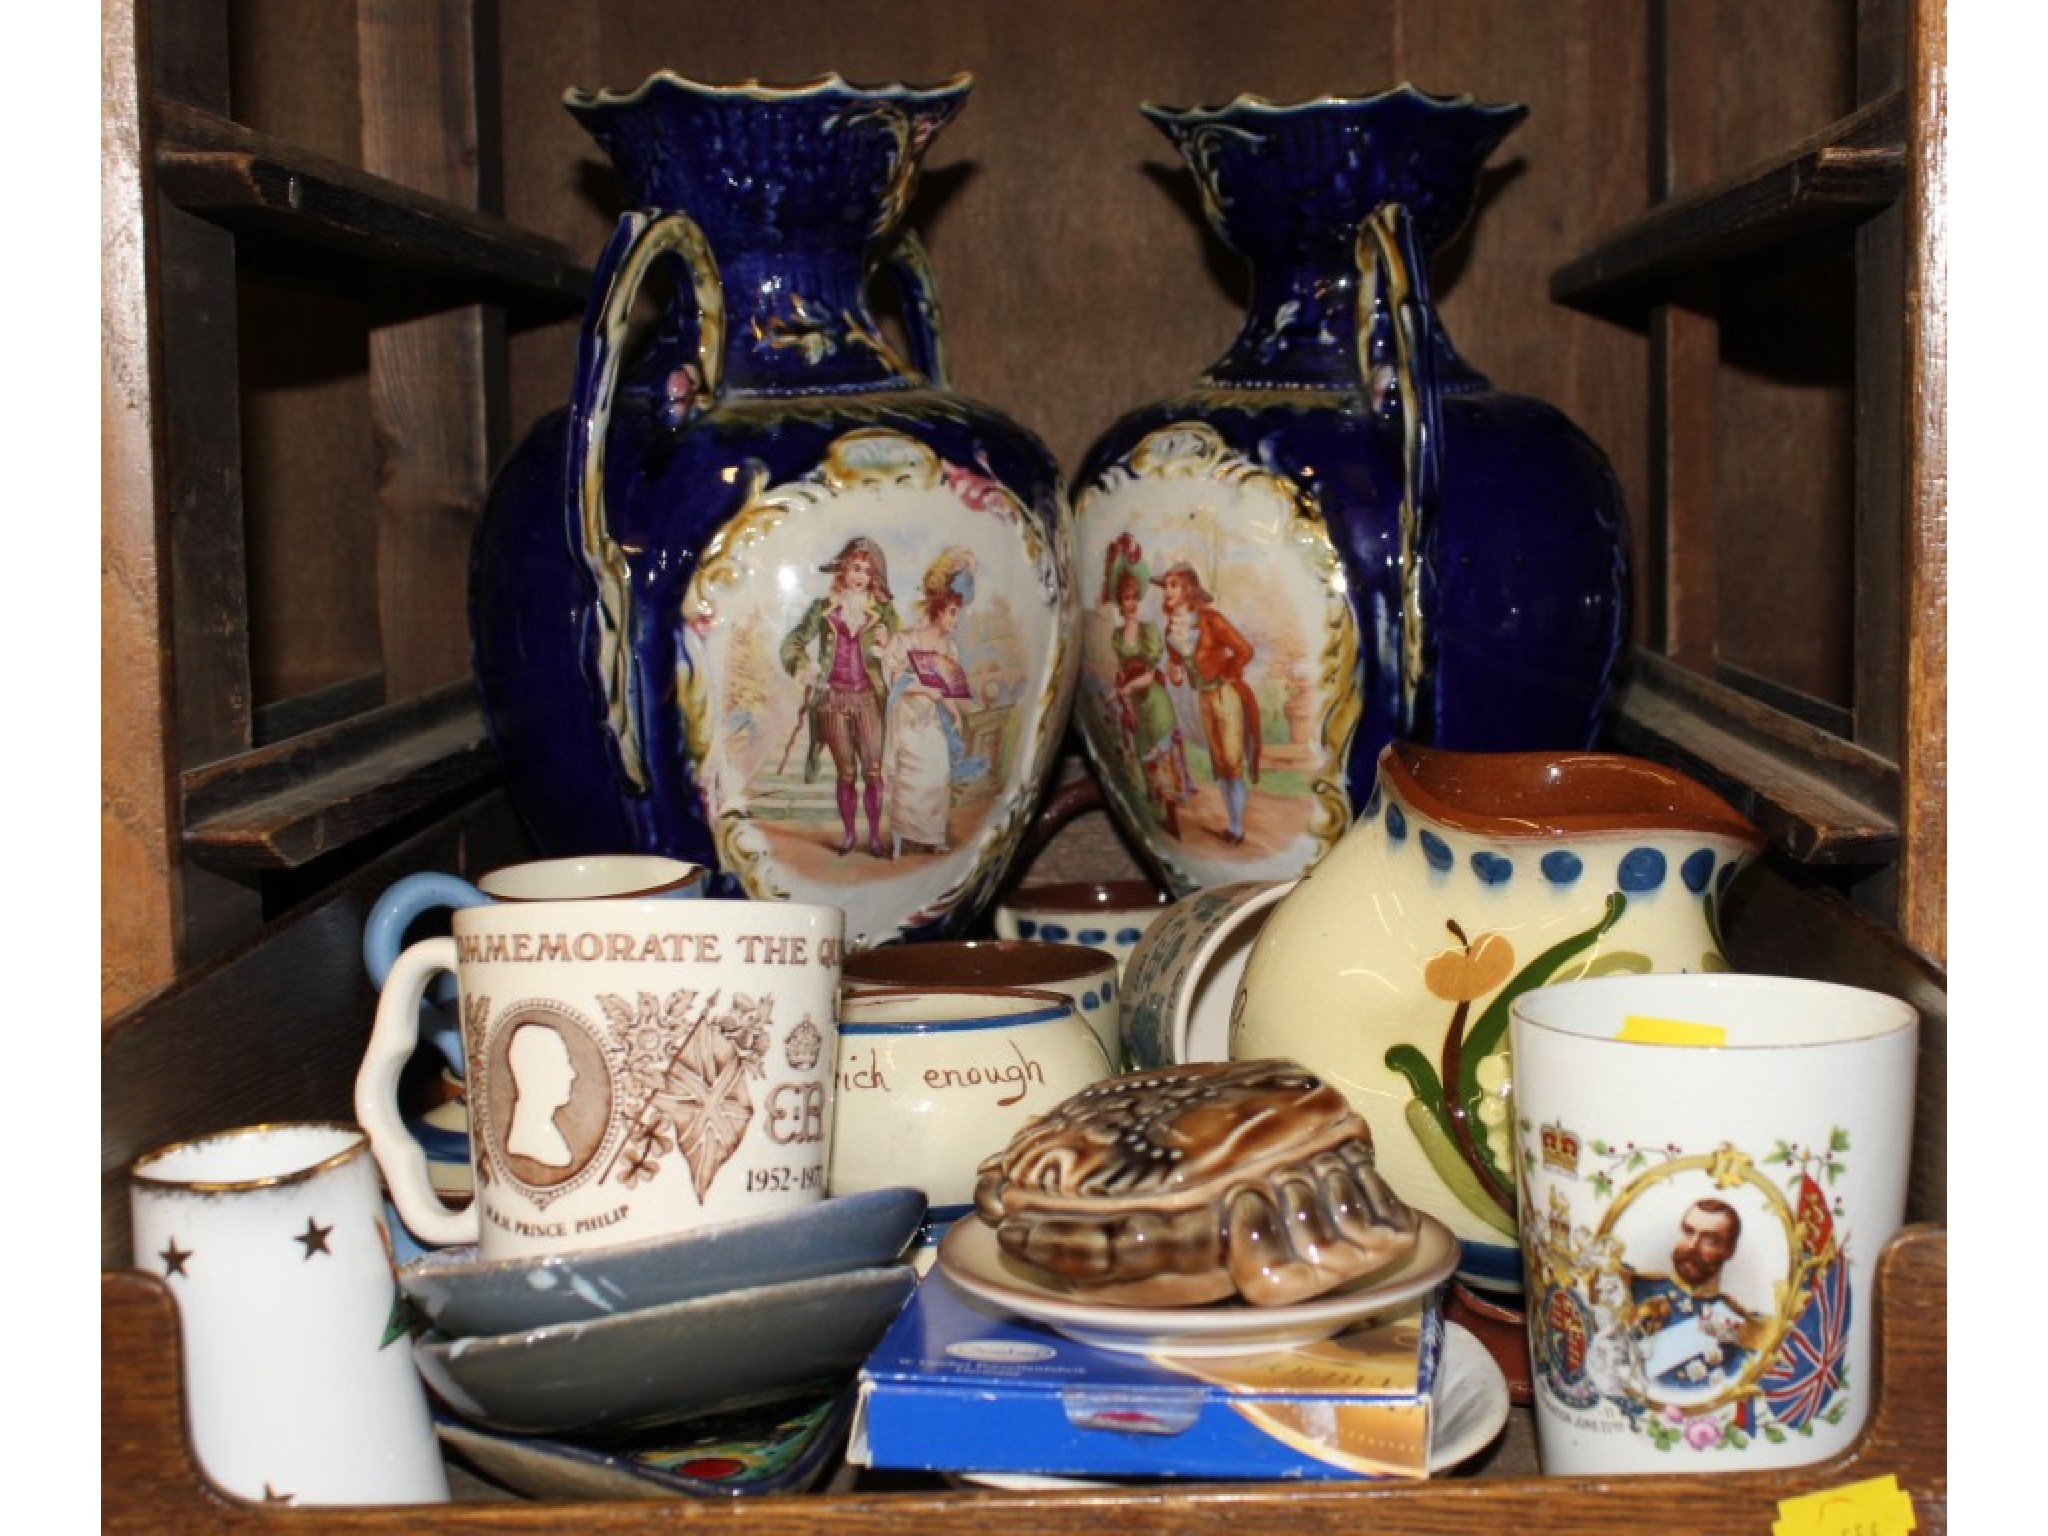 A collection of ceramics including Torquay Pottery, a pair of Victorian style vases and commemorative wares